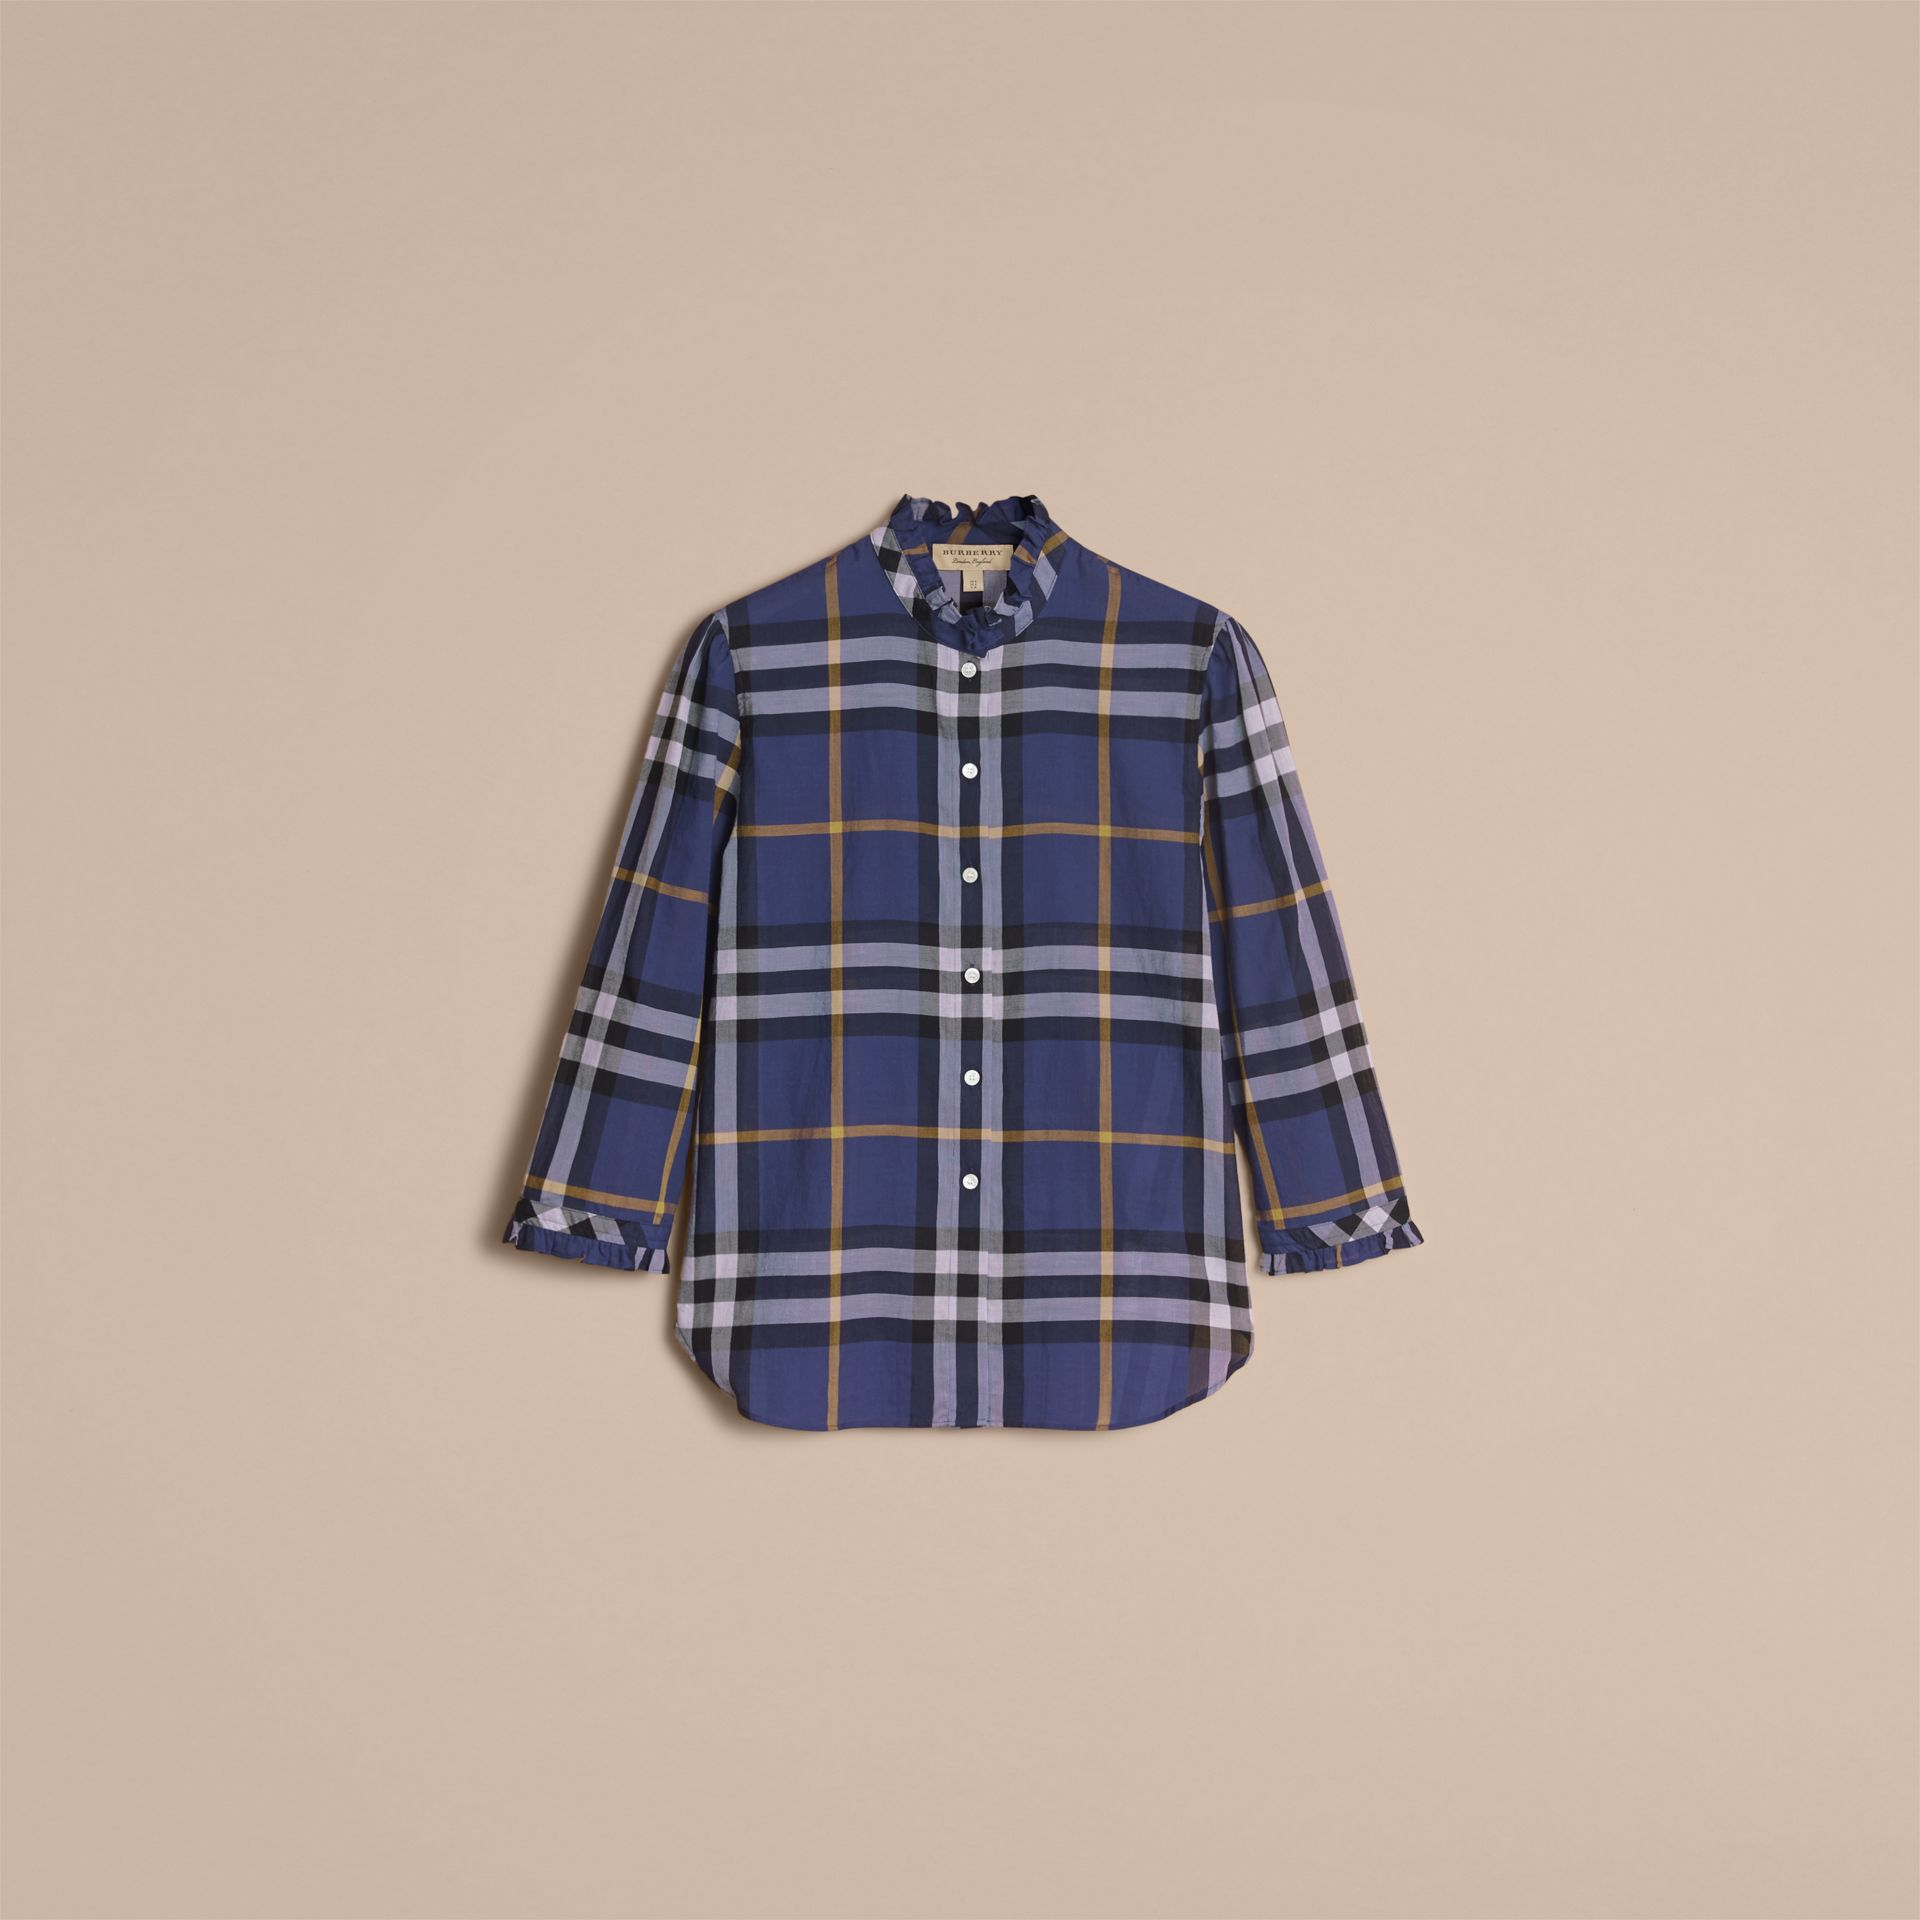 Ruffle Detail Check Cotton Shirt in Lapis Blue - Women | Burberry Australia - gallery image 4